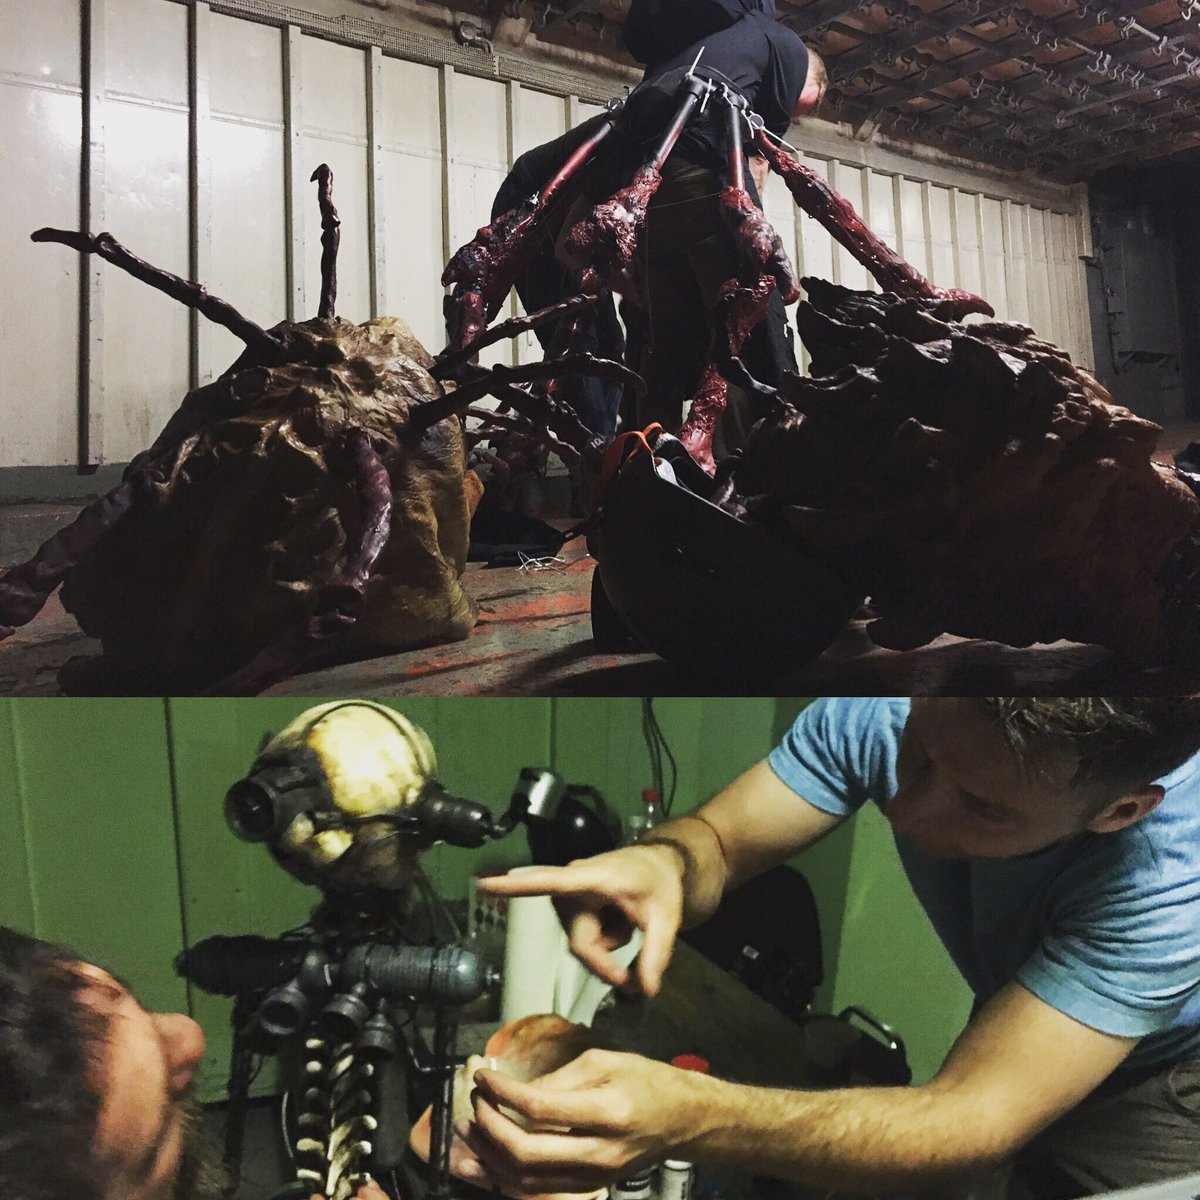 Getting it alive #Day6 #filming #Deathdrone #Spider #spaceship #filmmaking #SciFi #Horror #SpaceOpera #Hamburg #Hollywood #ViolentStarr<br>http://pic.twitter.com/WXIVwNnXtW